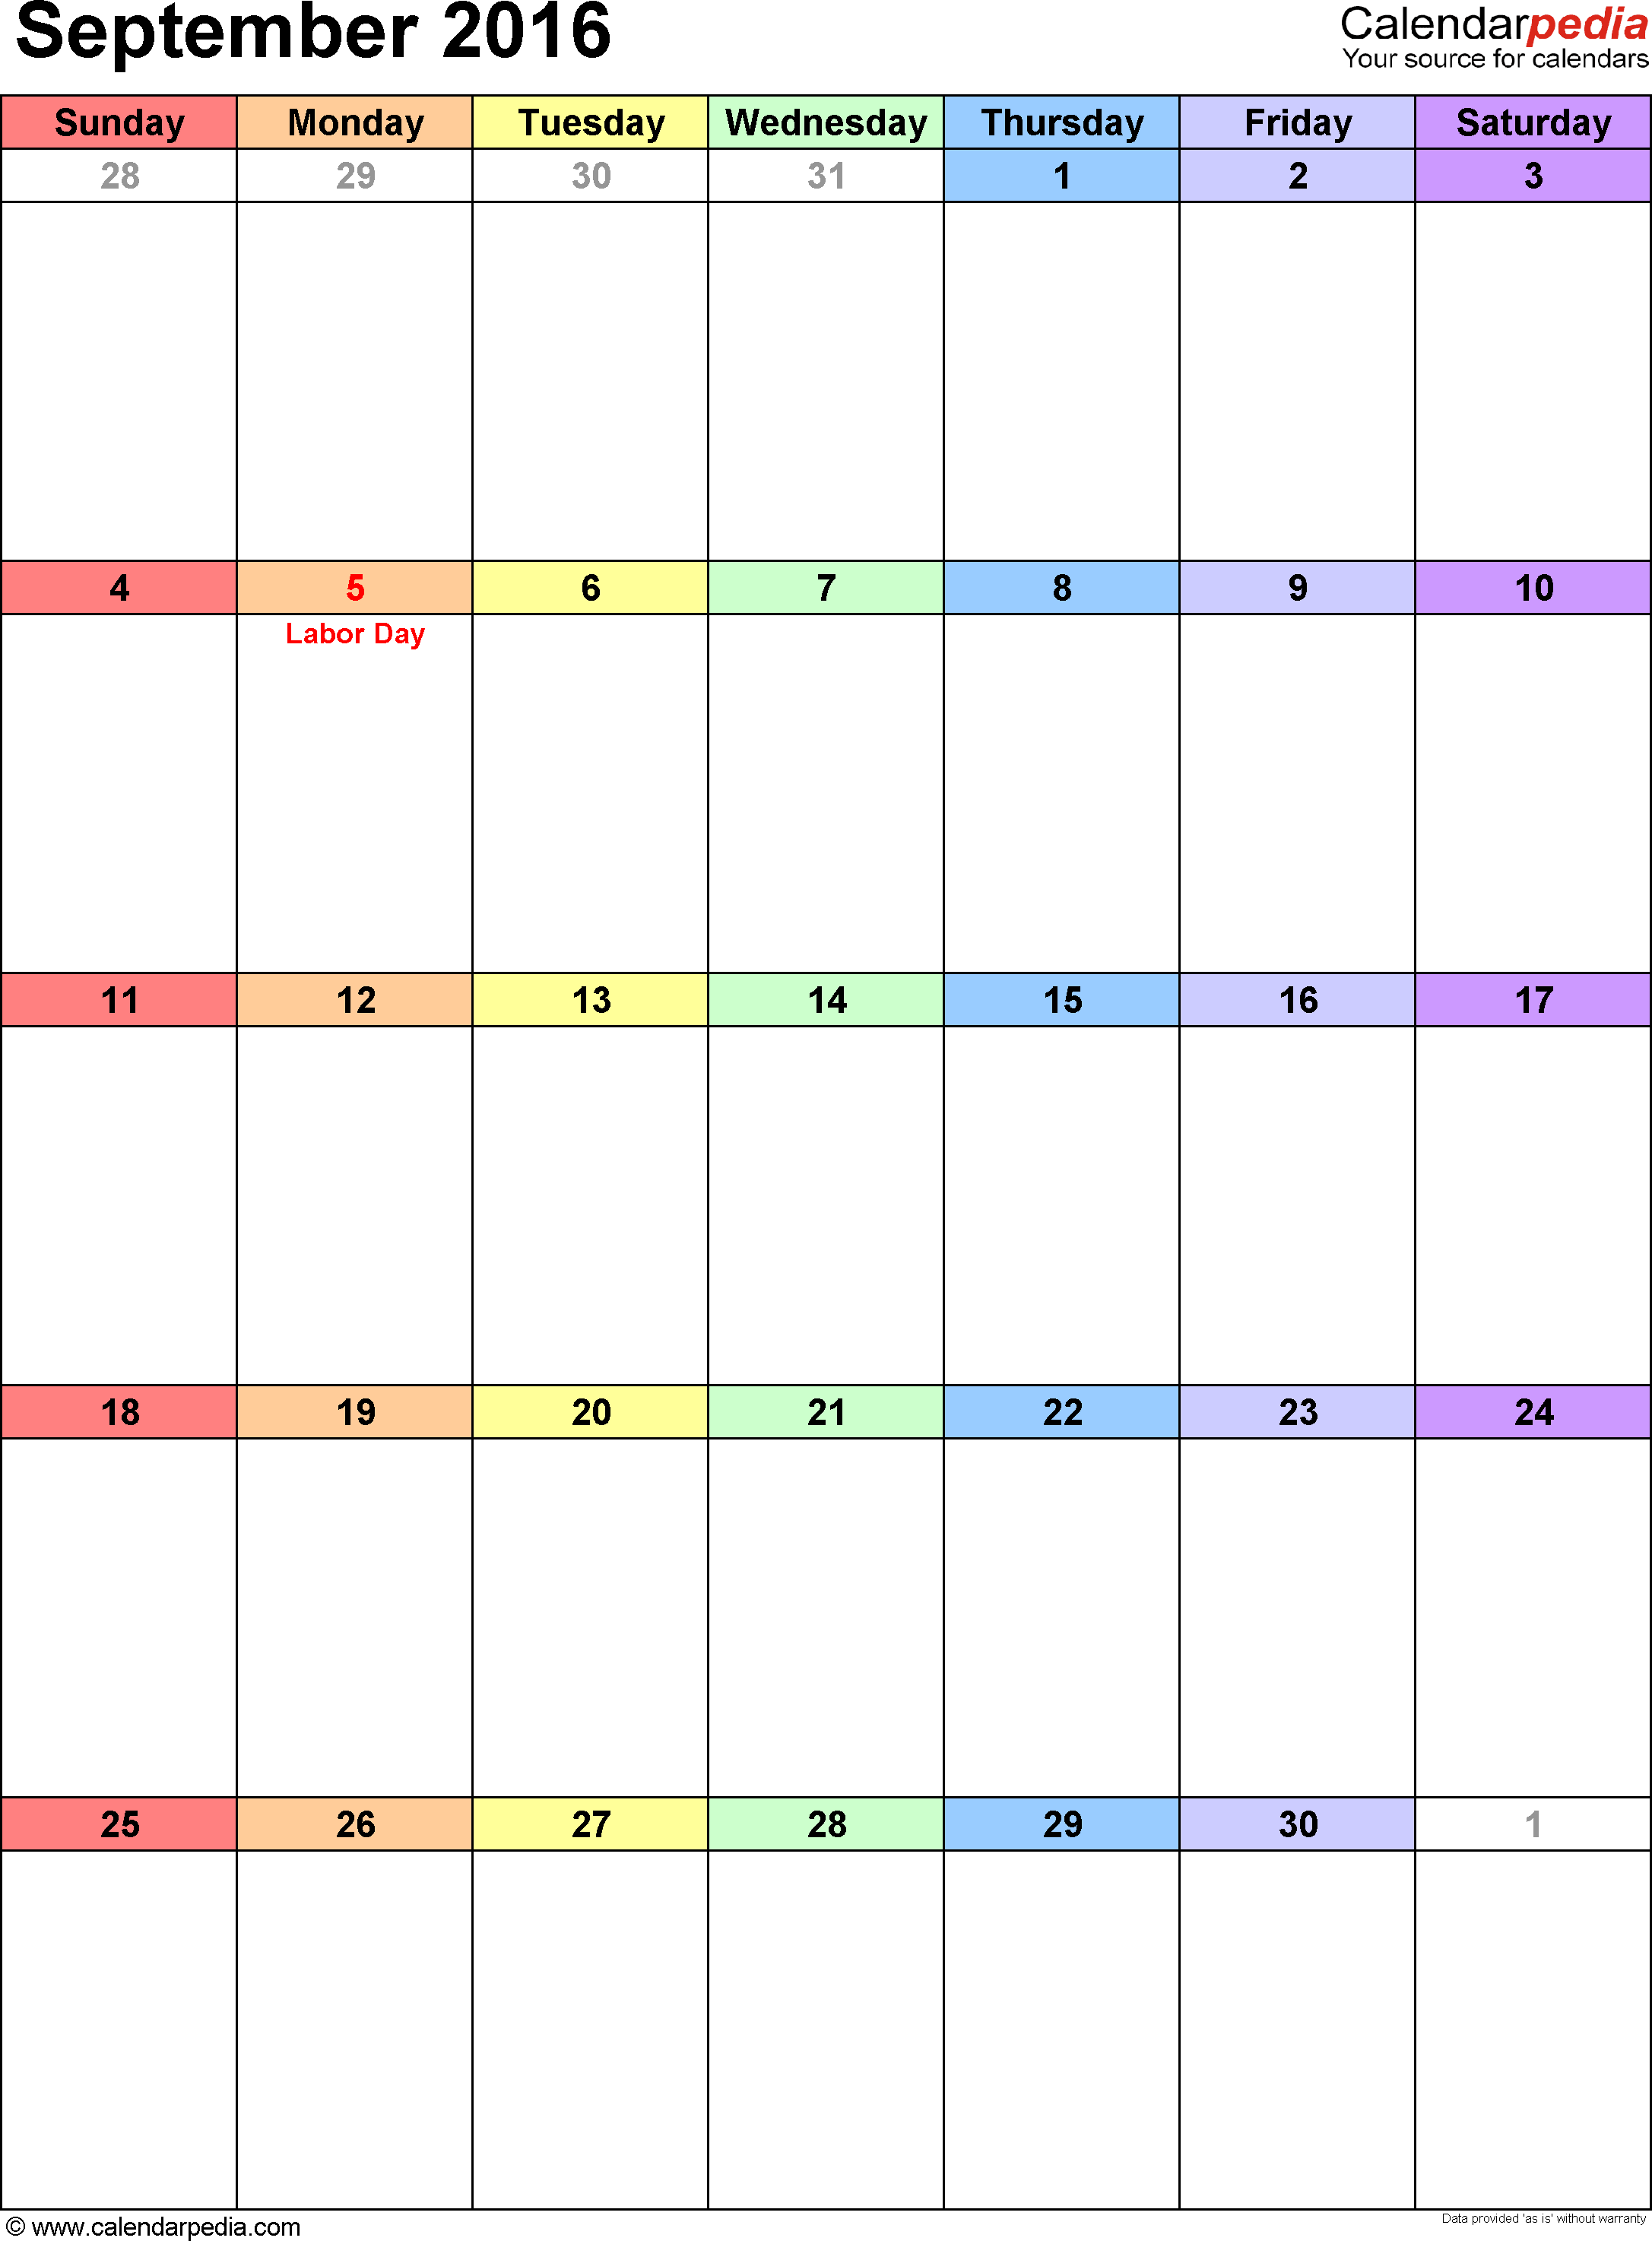 September 2016 calendar as printable Word, Excel & PDF templates